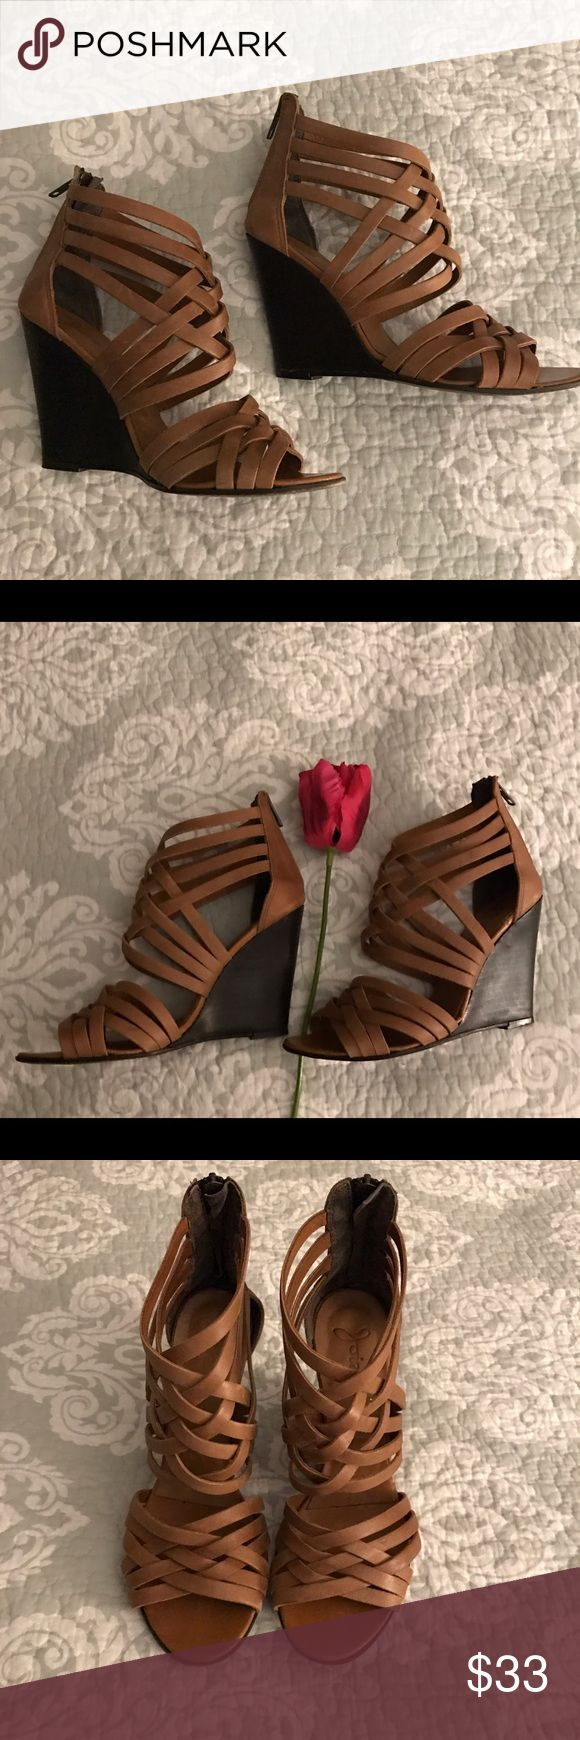 Joie Leather Strapy Wedges size-38 made in Italy Joie Leather Strapped Wedges made in Italy 🇮🇹,in the Size-38 or 7 1/2(size 7 can also ware),with a zippered detail in the back of the shoes, these are beautiful Wedges you need the the summer , for going out and for the office also , you can dress these up or down, these shoes have been worn but taken care of in great used condition , you can only tell that they've been worn from the bottom . Joie  Shoes Wedges